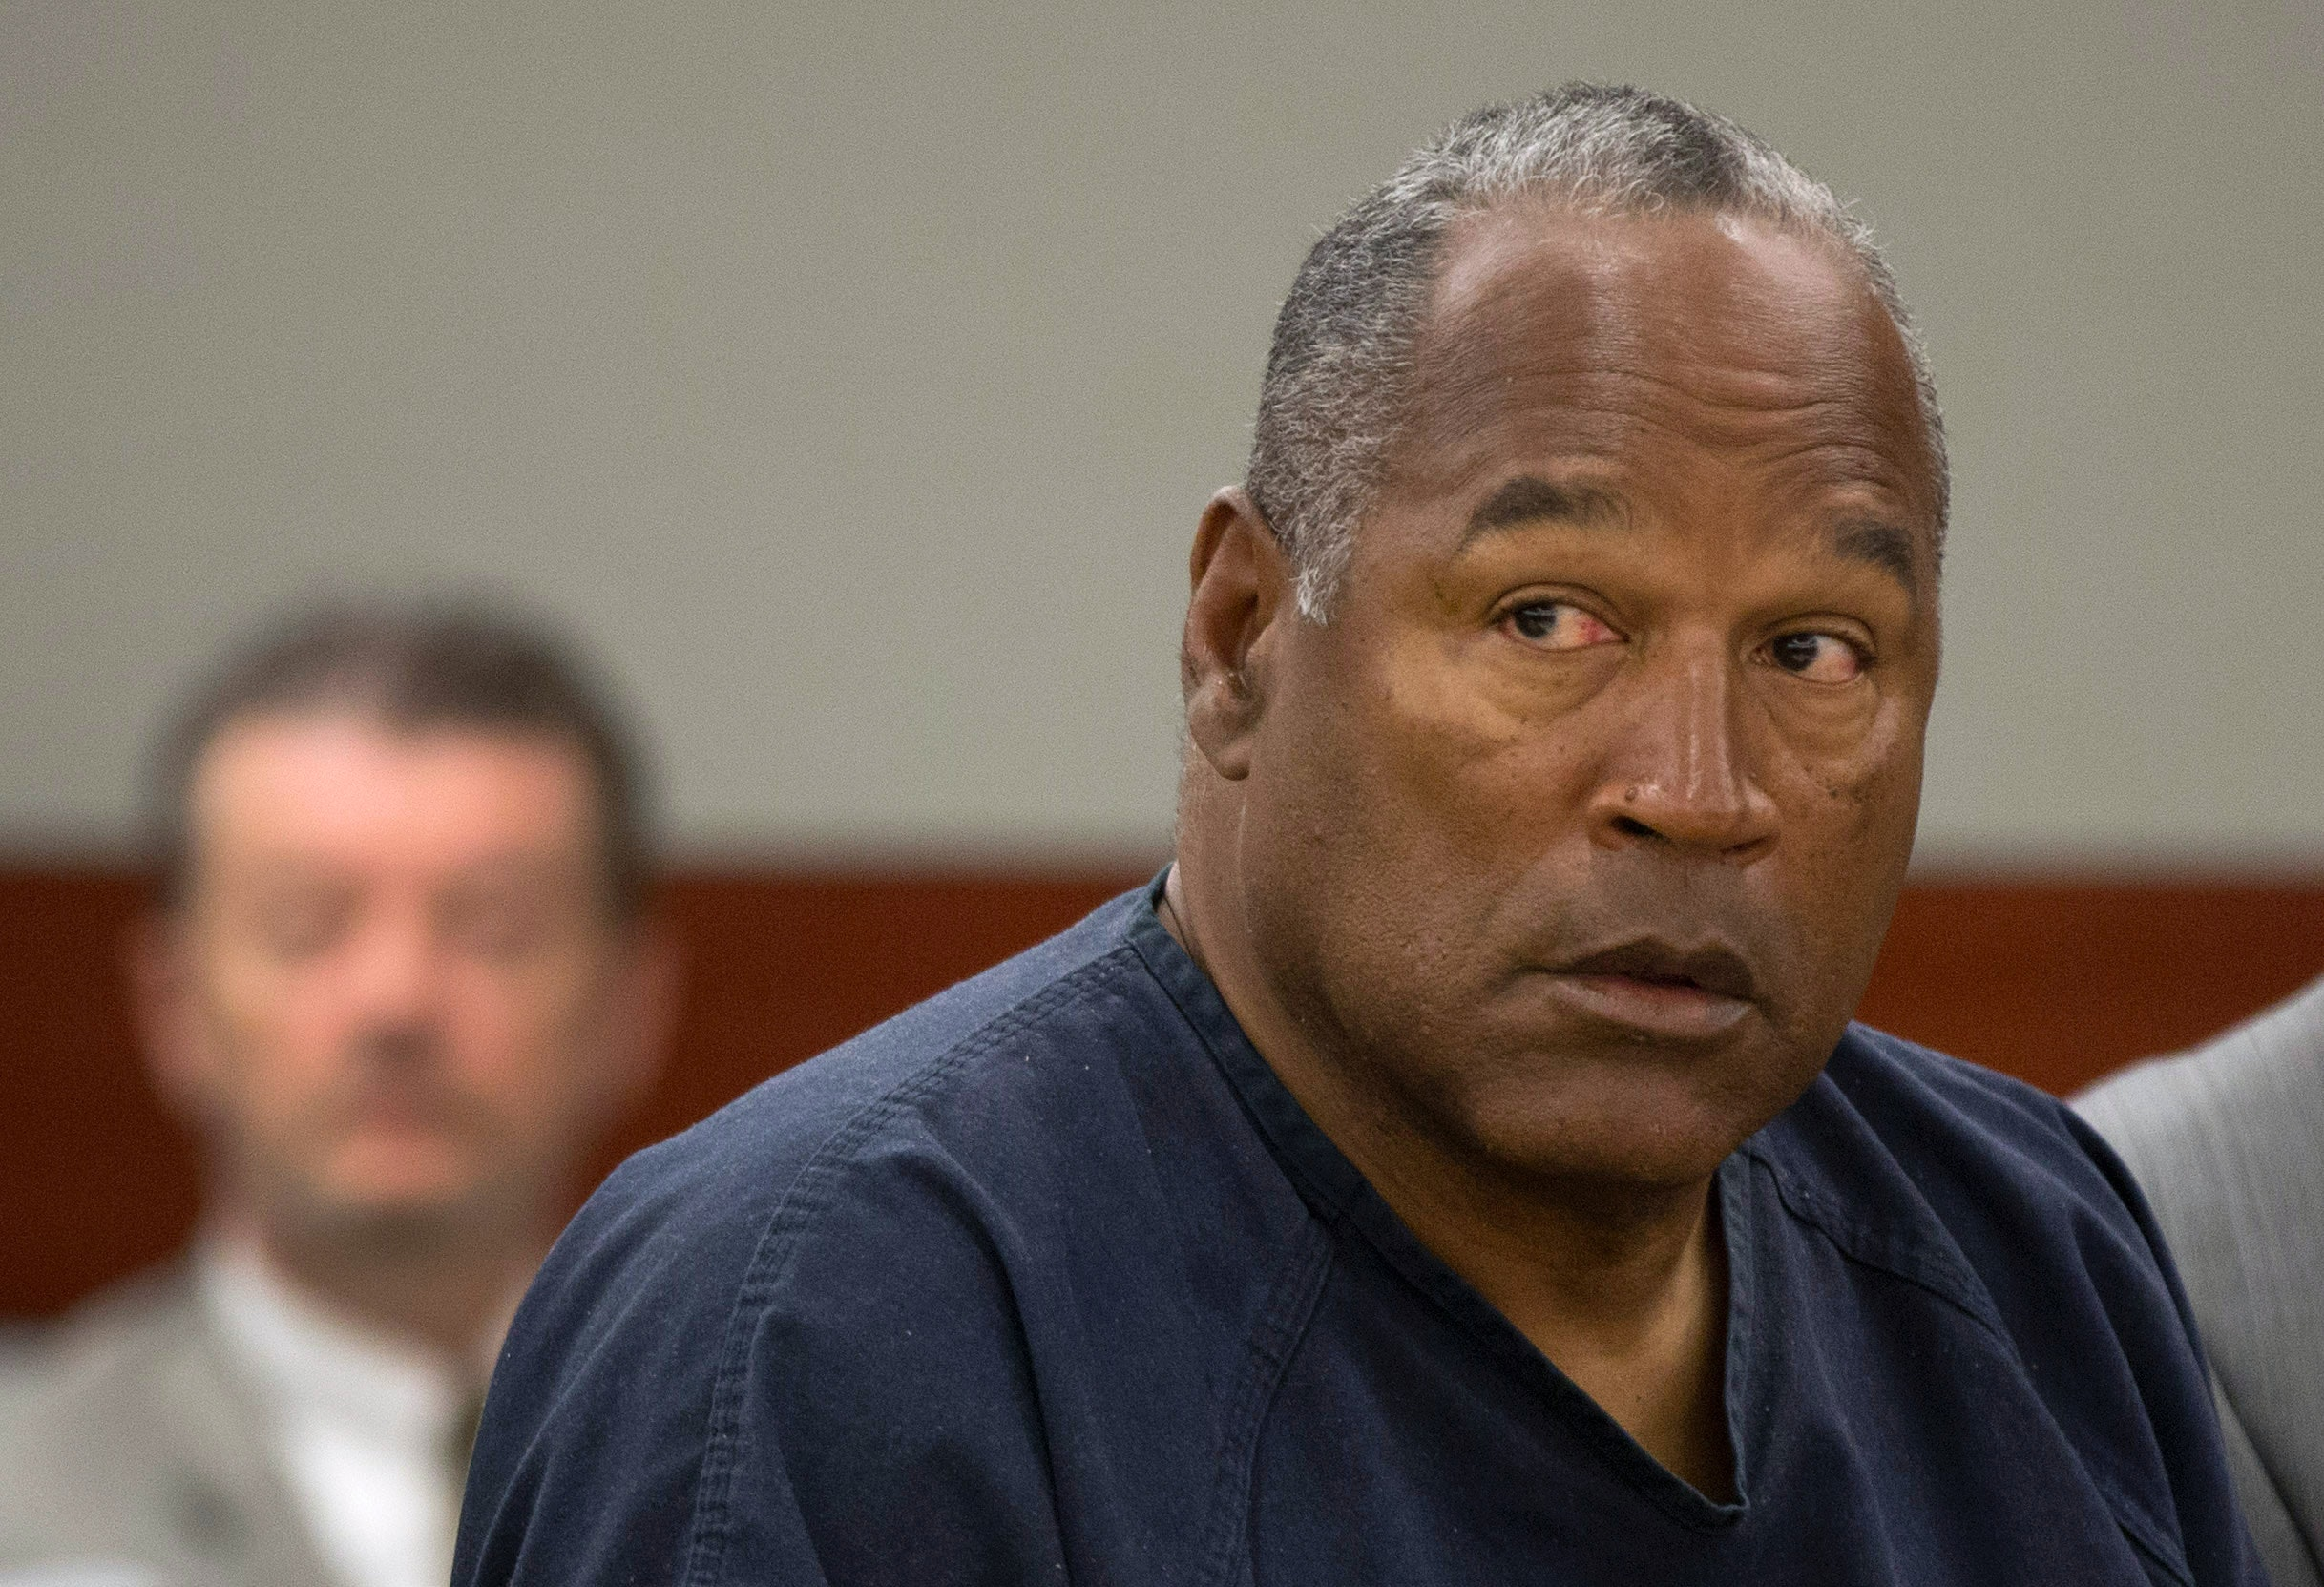 If OJ Simpson Got Arrested For Armed Robbery, Here's How it Happened nude (82 pictures)